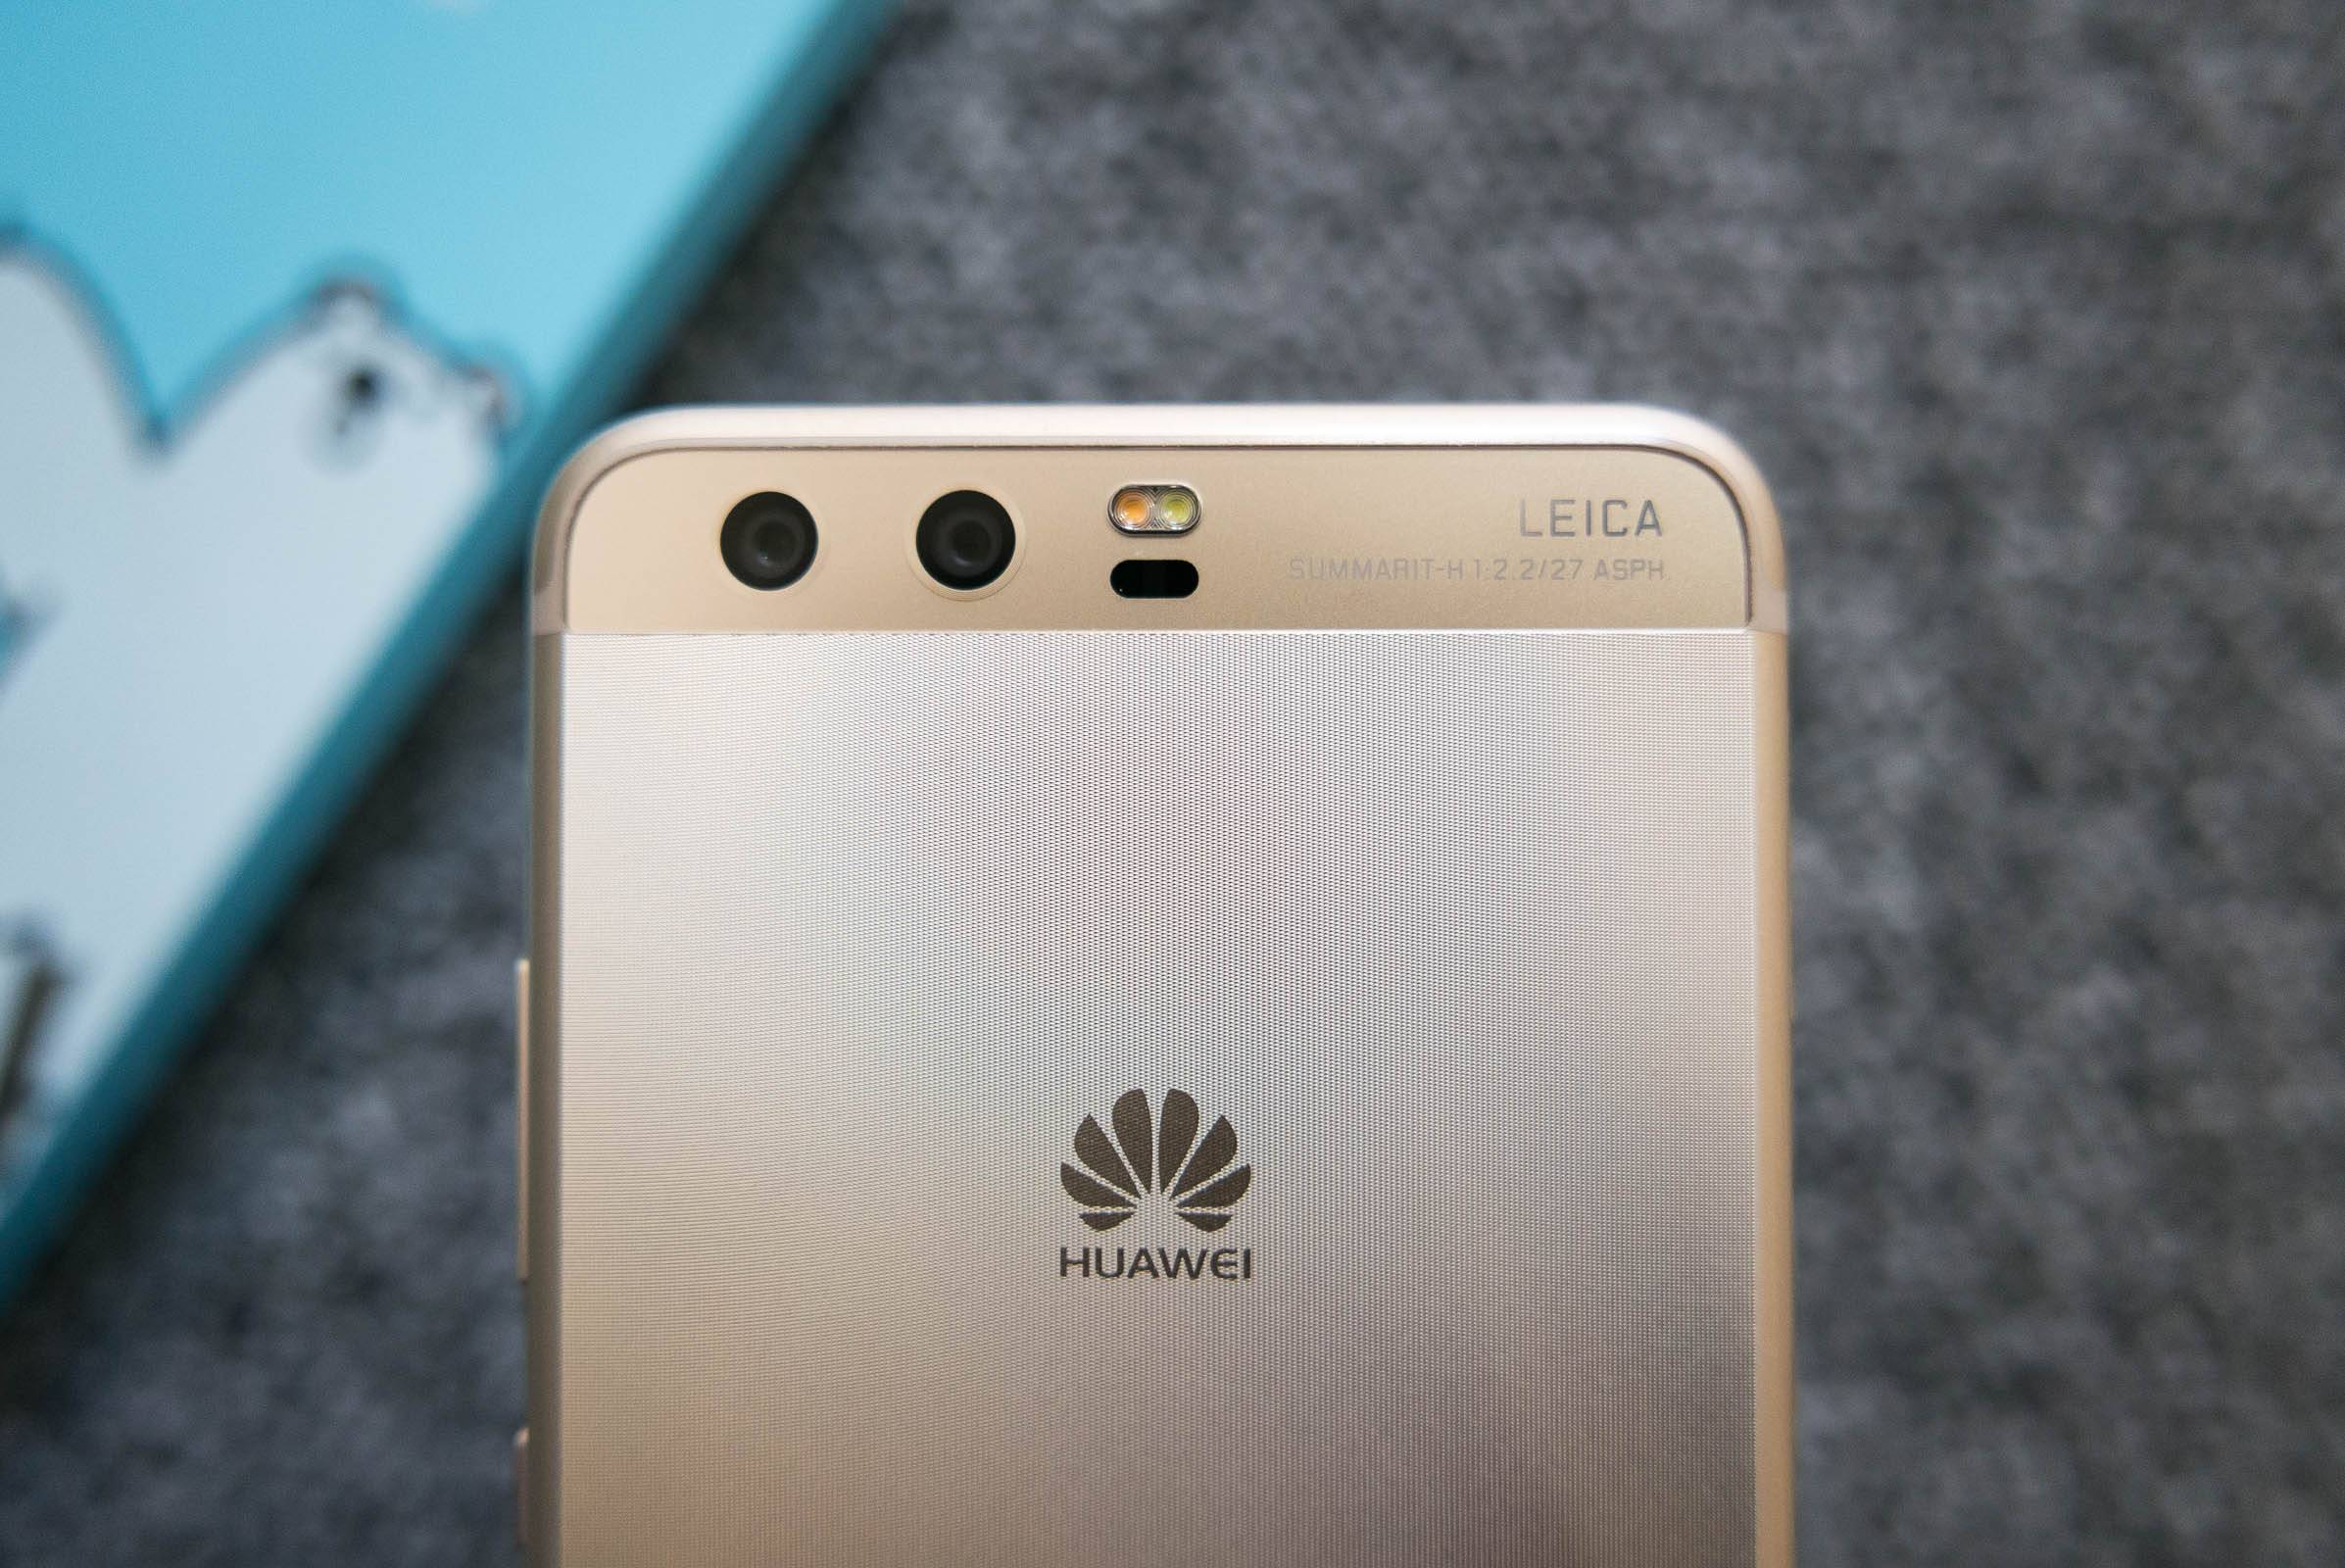 huawei P10 gold version Photo By Hao Ying-11